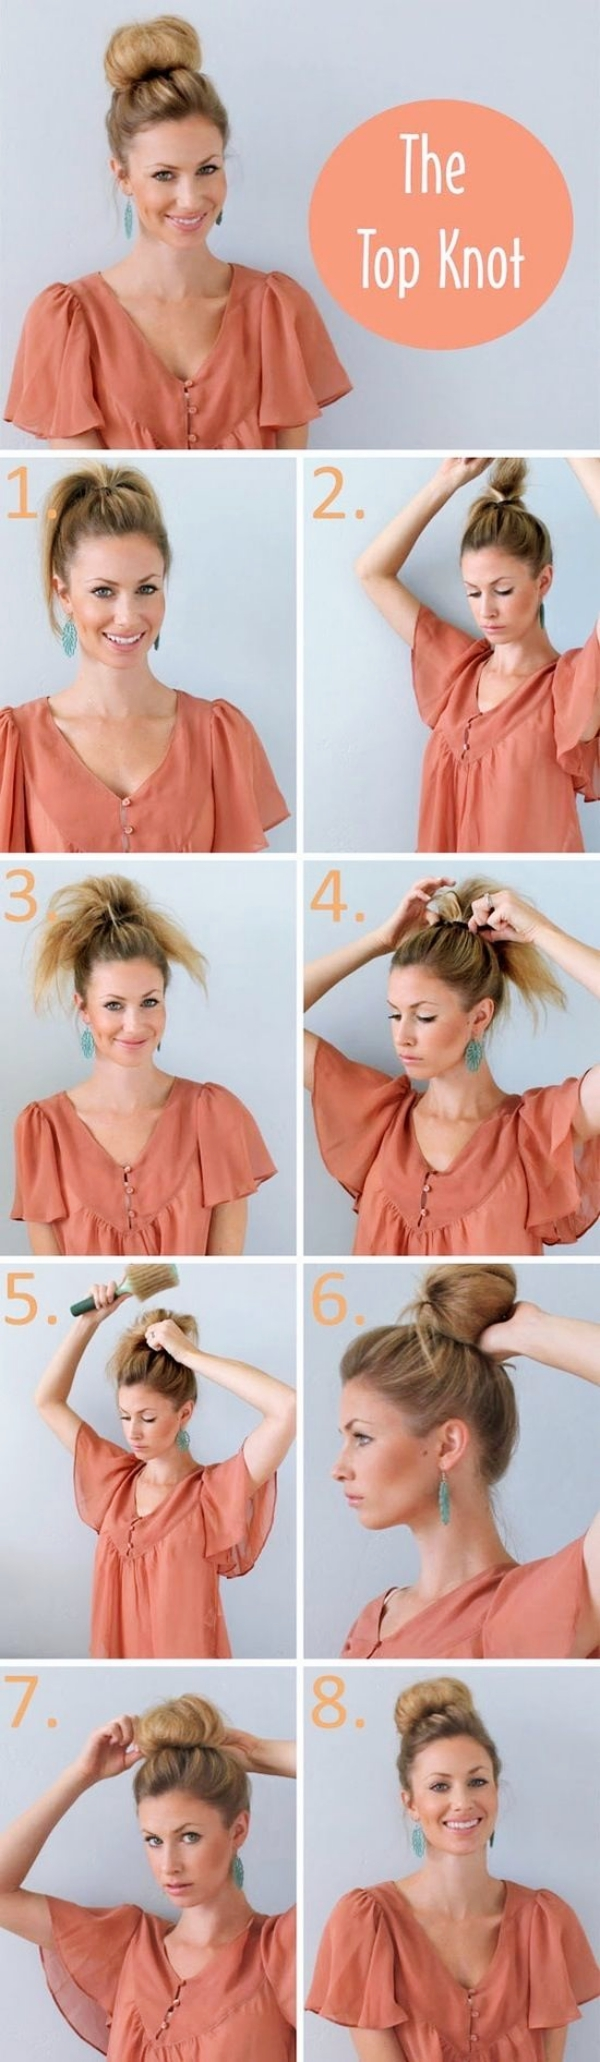 40 Easy Hairstyles (No Haircuts) for Women with Short Hair - How to ...